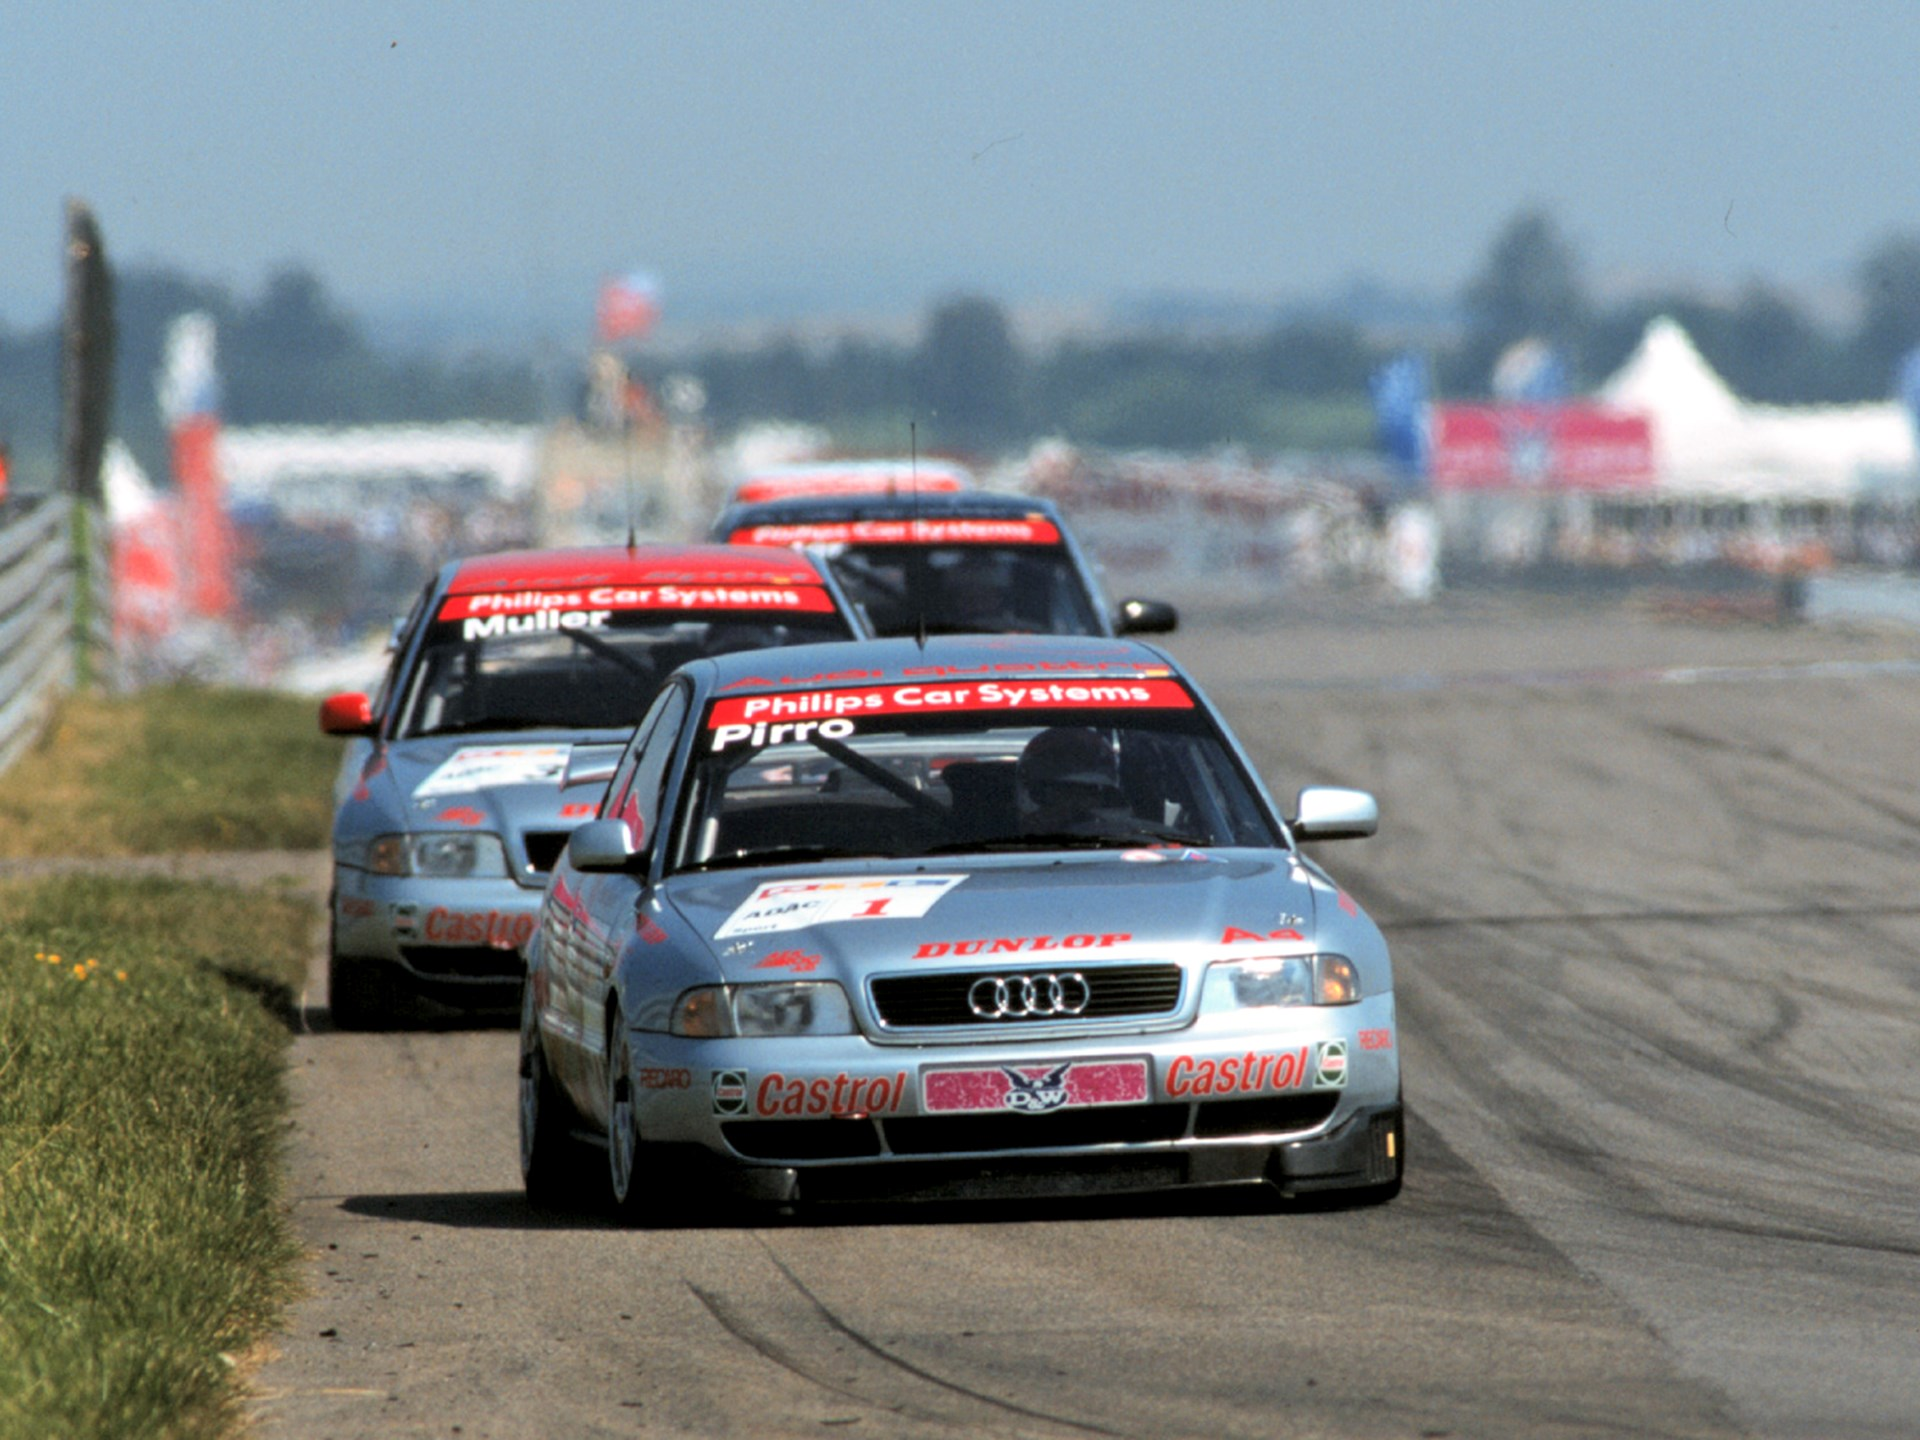 Emanuele Pirro behind the wheel of his Audi during the 1997 ADAC SuperTourenwagen Cup Series.